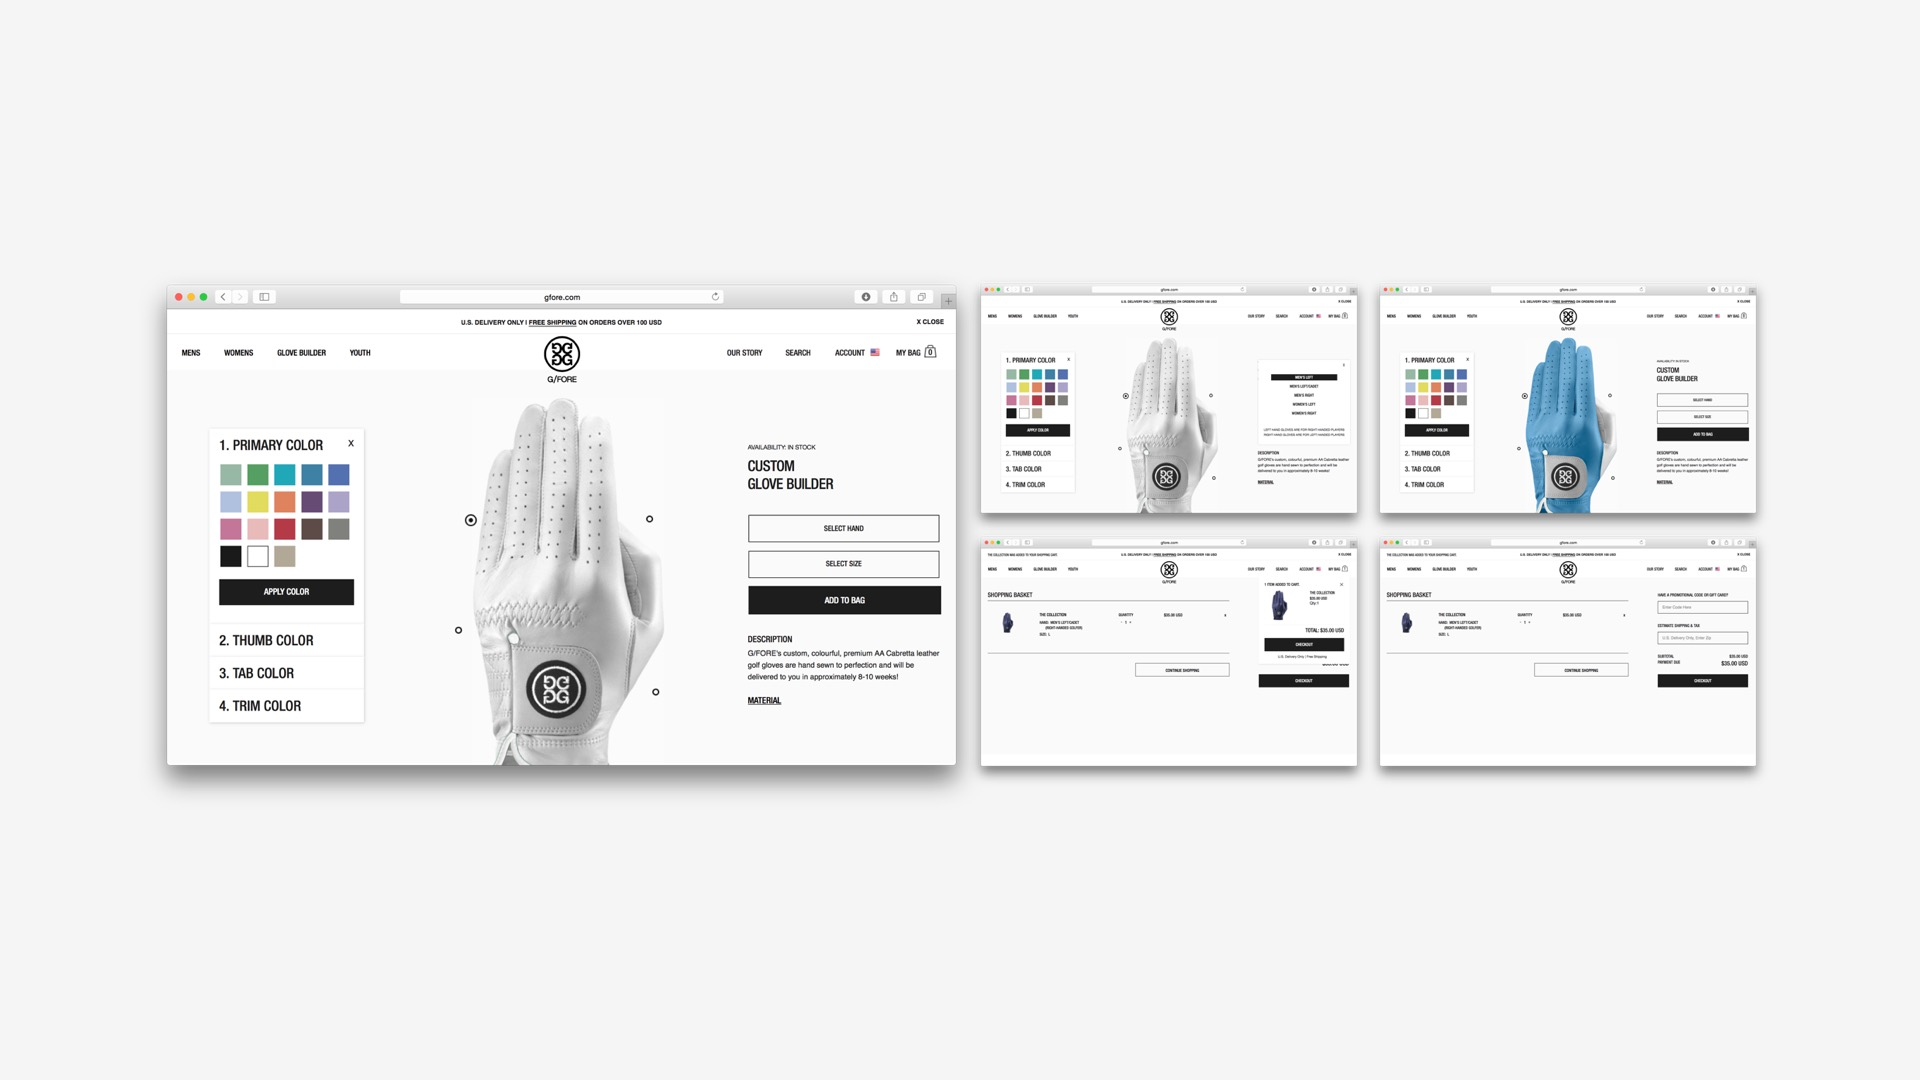 G/Fore: Magento Shopping Cart/Checkout Process